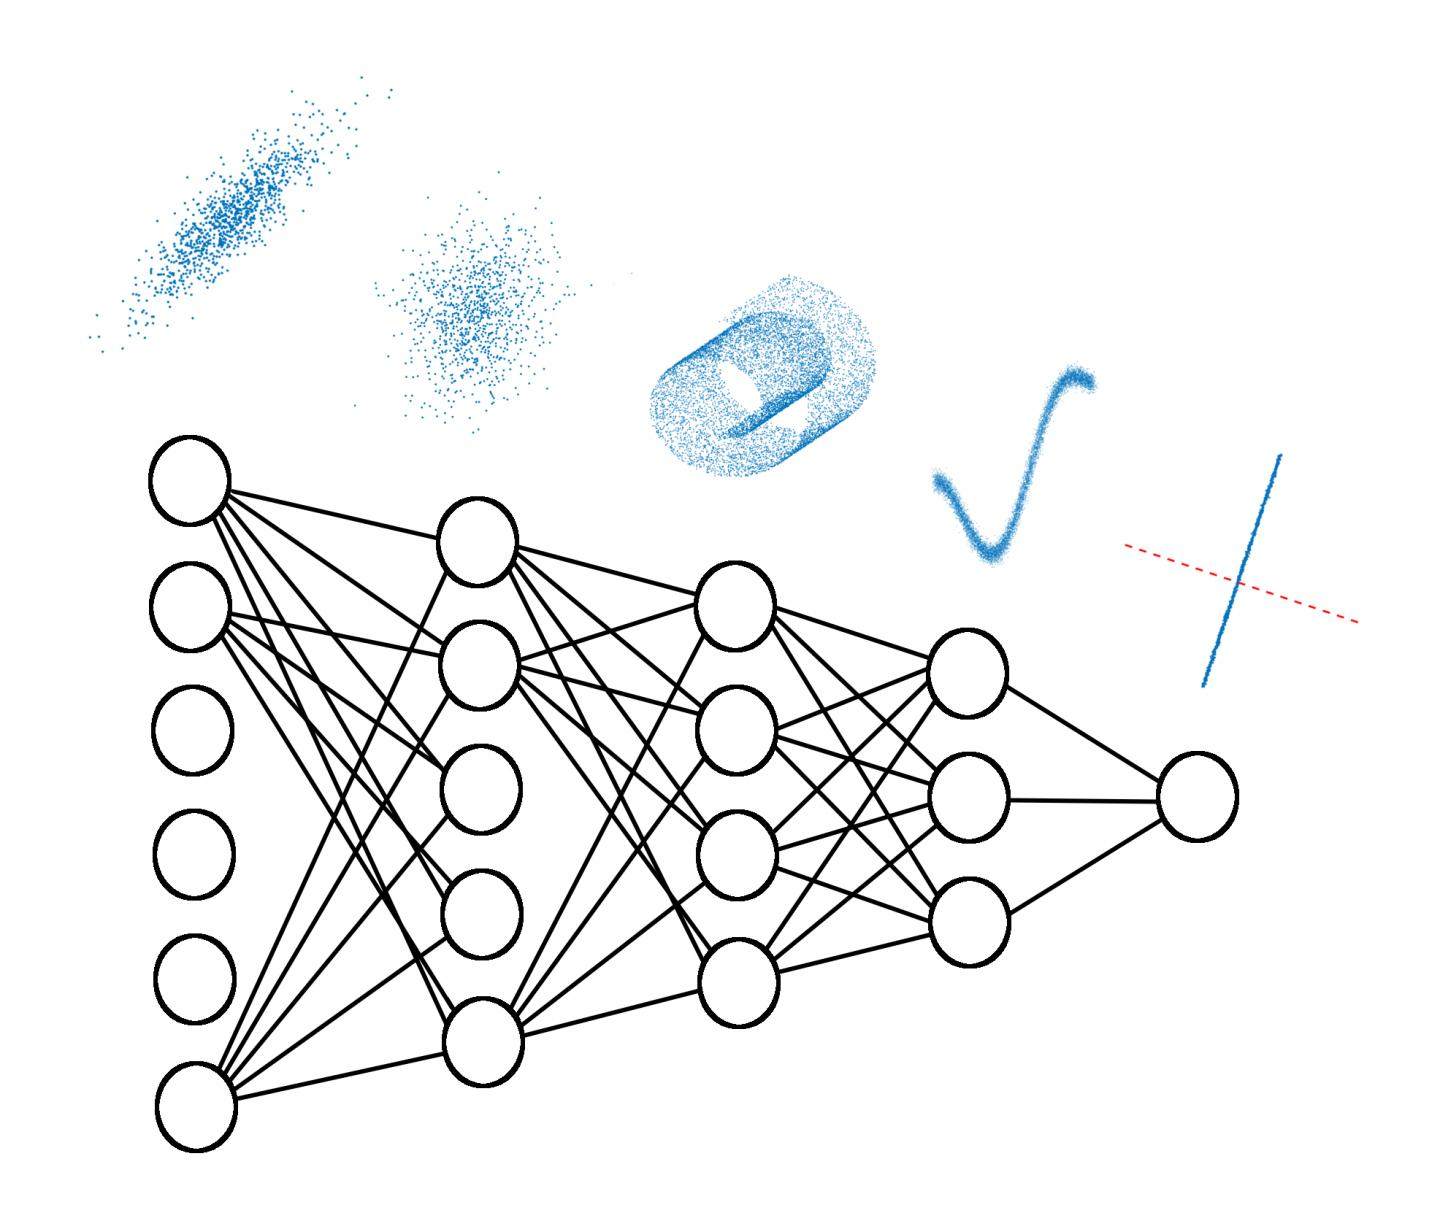 Information Processing in Deep Neural Networks